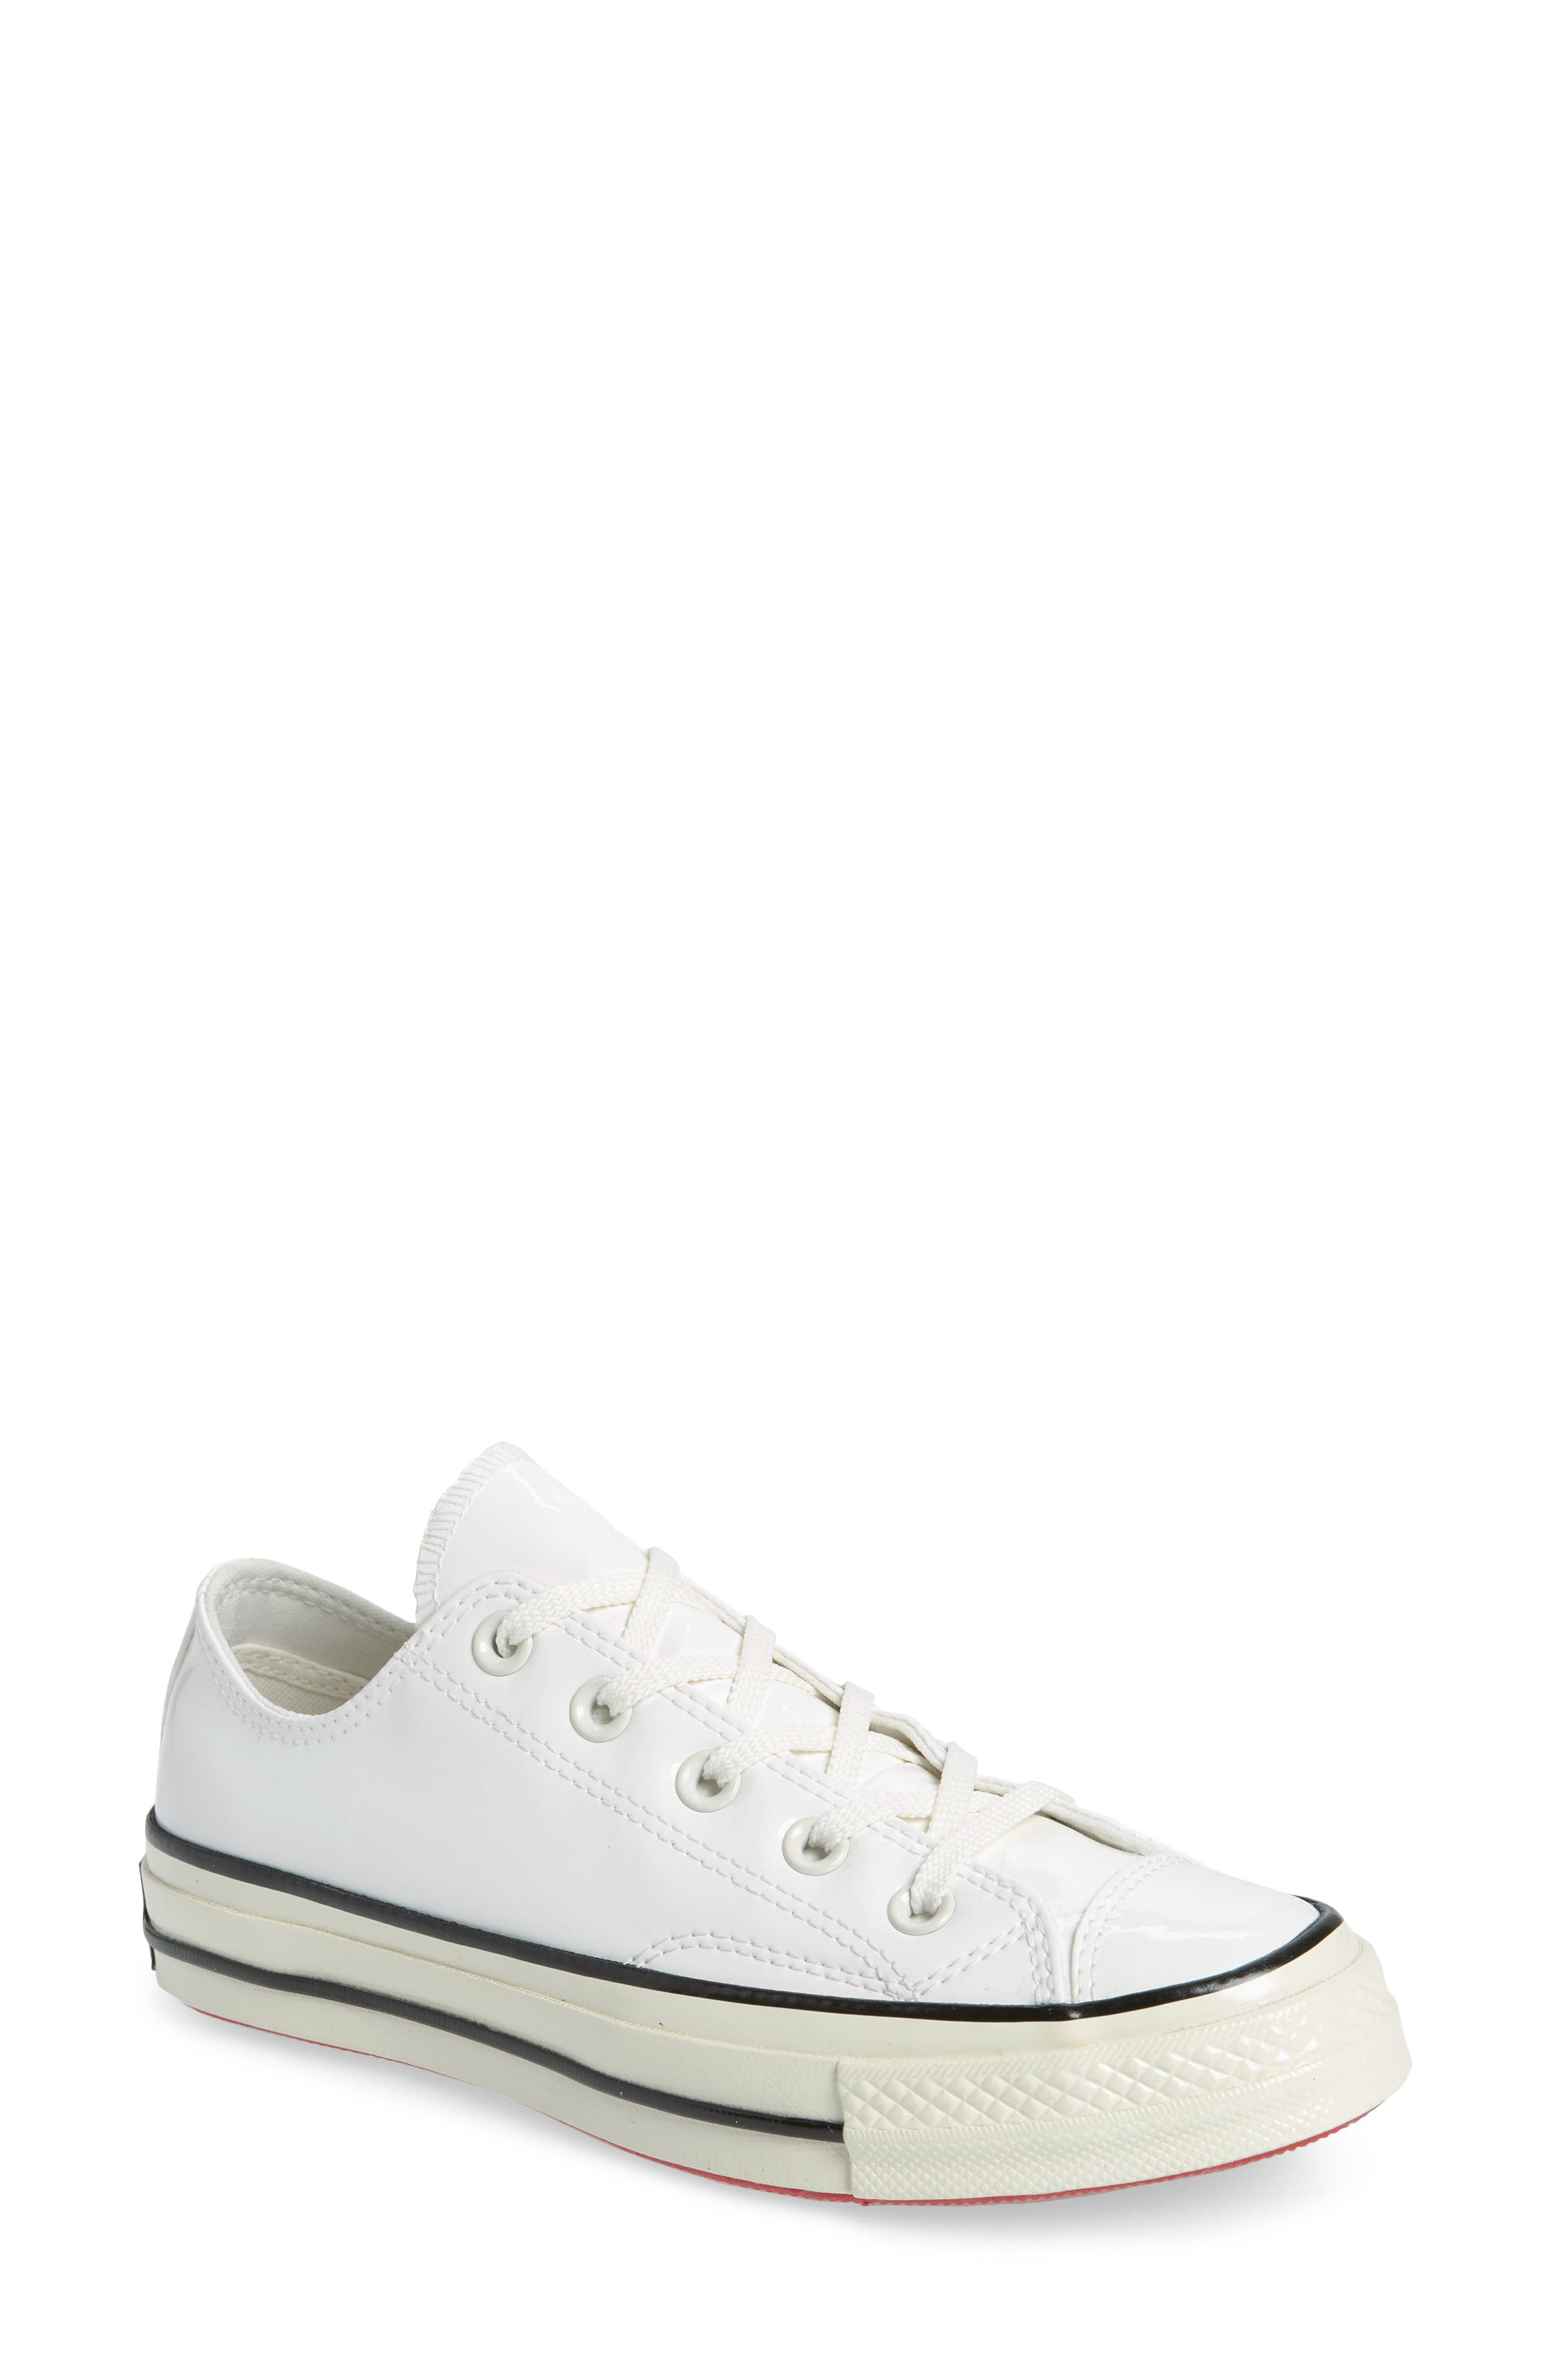 f3491a0f7af9 hot these white high top converse size 45711 8be38  coupon code converse  chuck taylor all star 70 patent low top sneaker women 62cdb a87aa